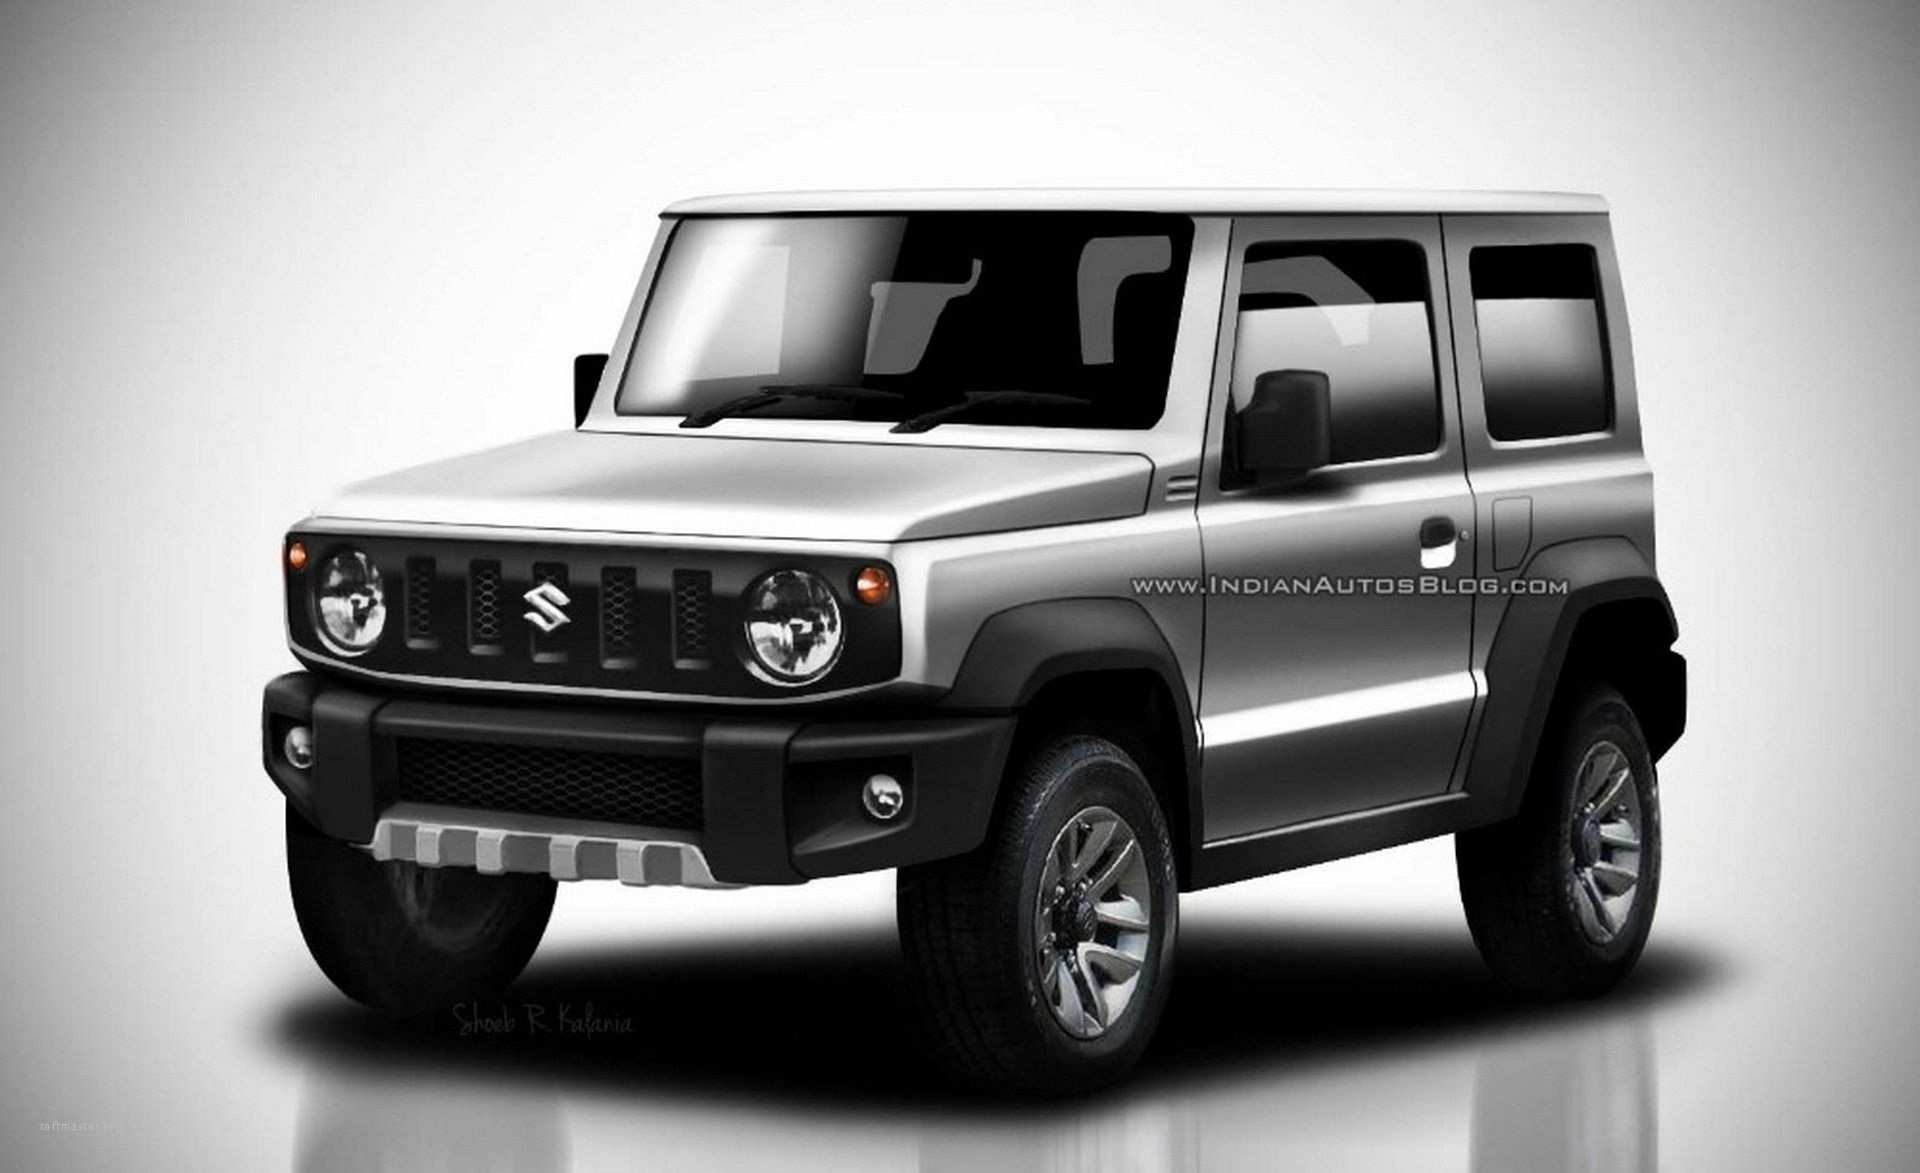 87 Best 2020 Suzuki Jimny Reviews